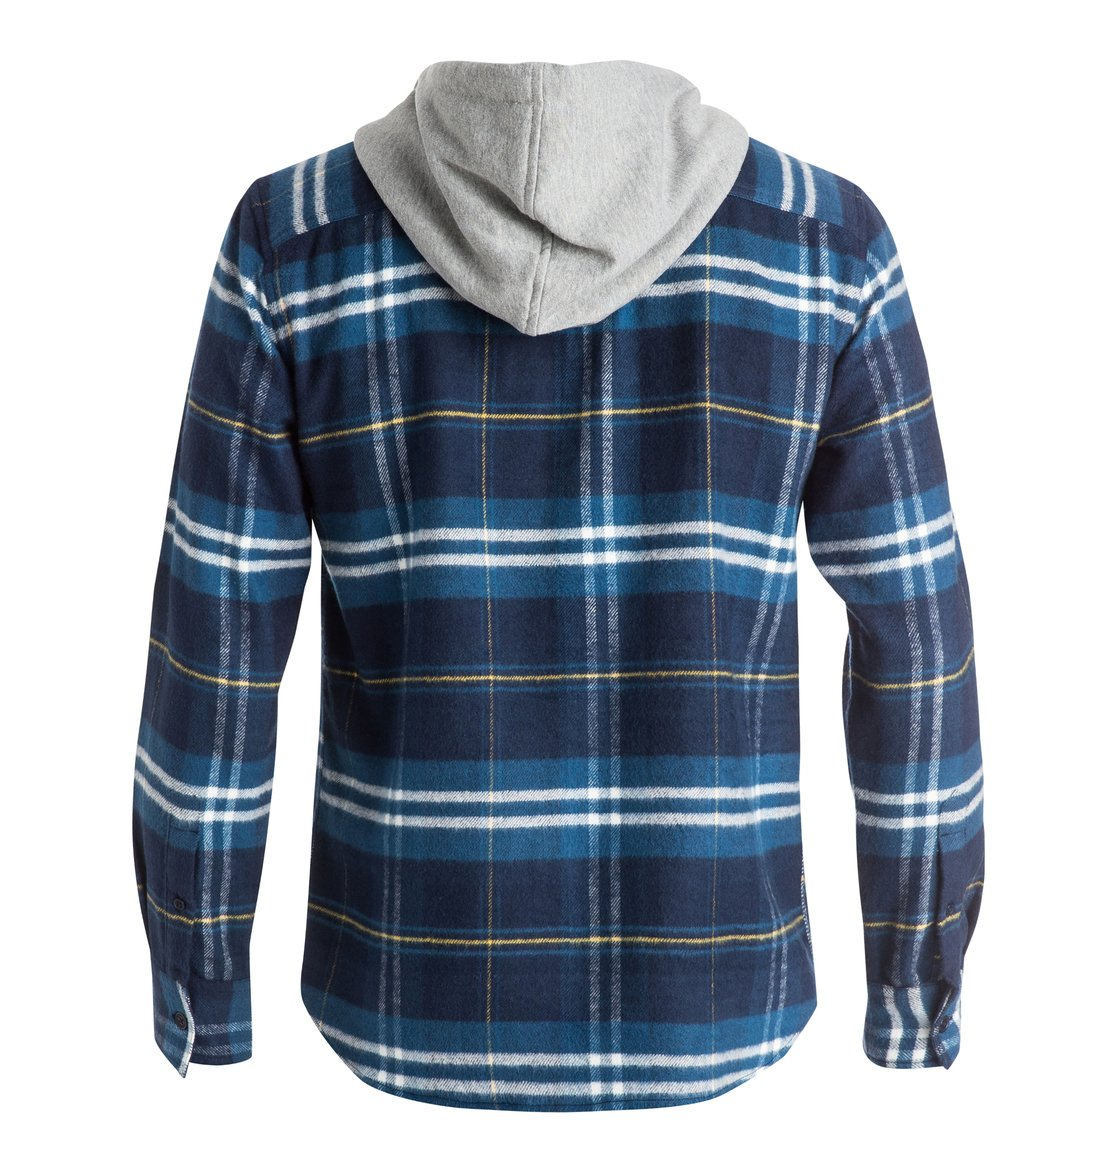 Dc shoes men 39 s hood up long sleeve flannel shirt for How to wear men s flannel shirts